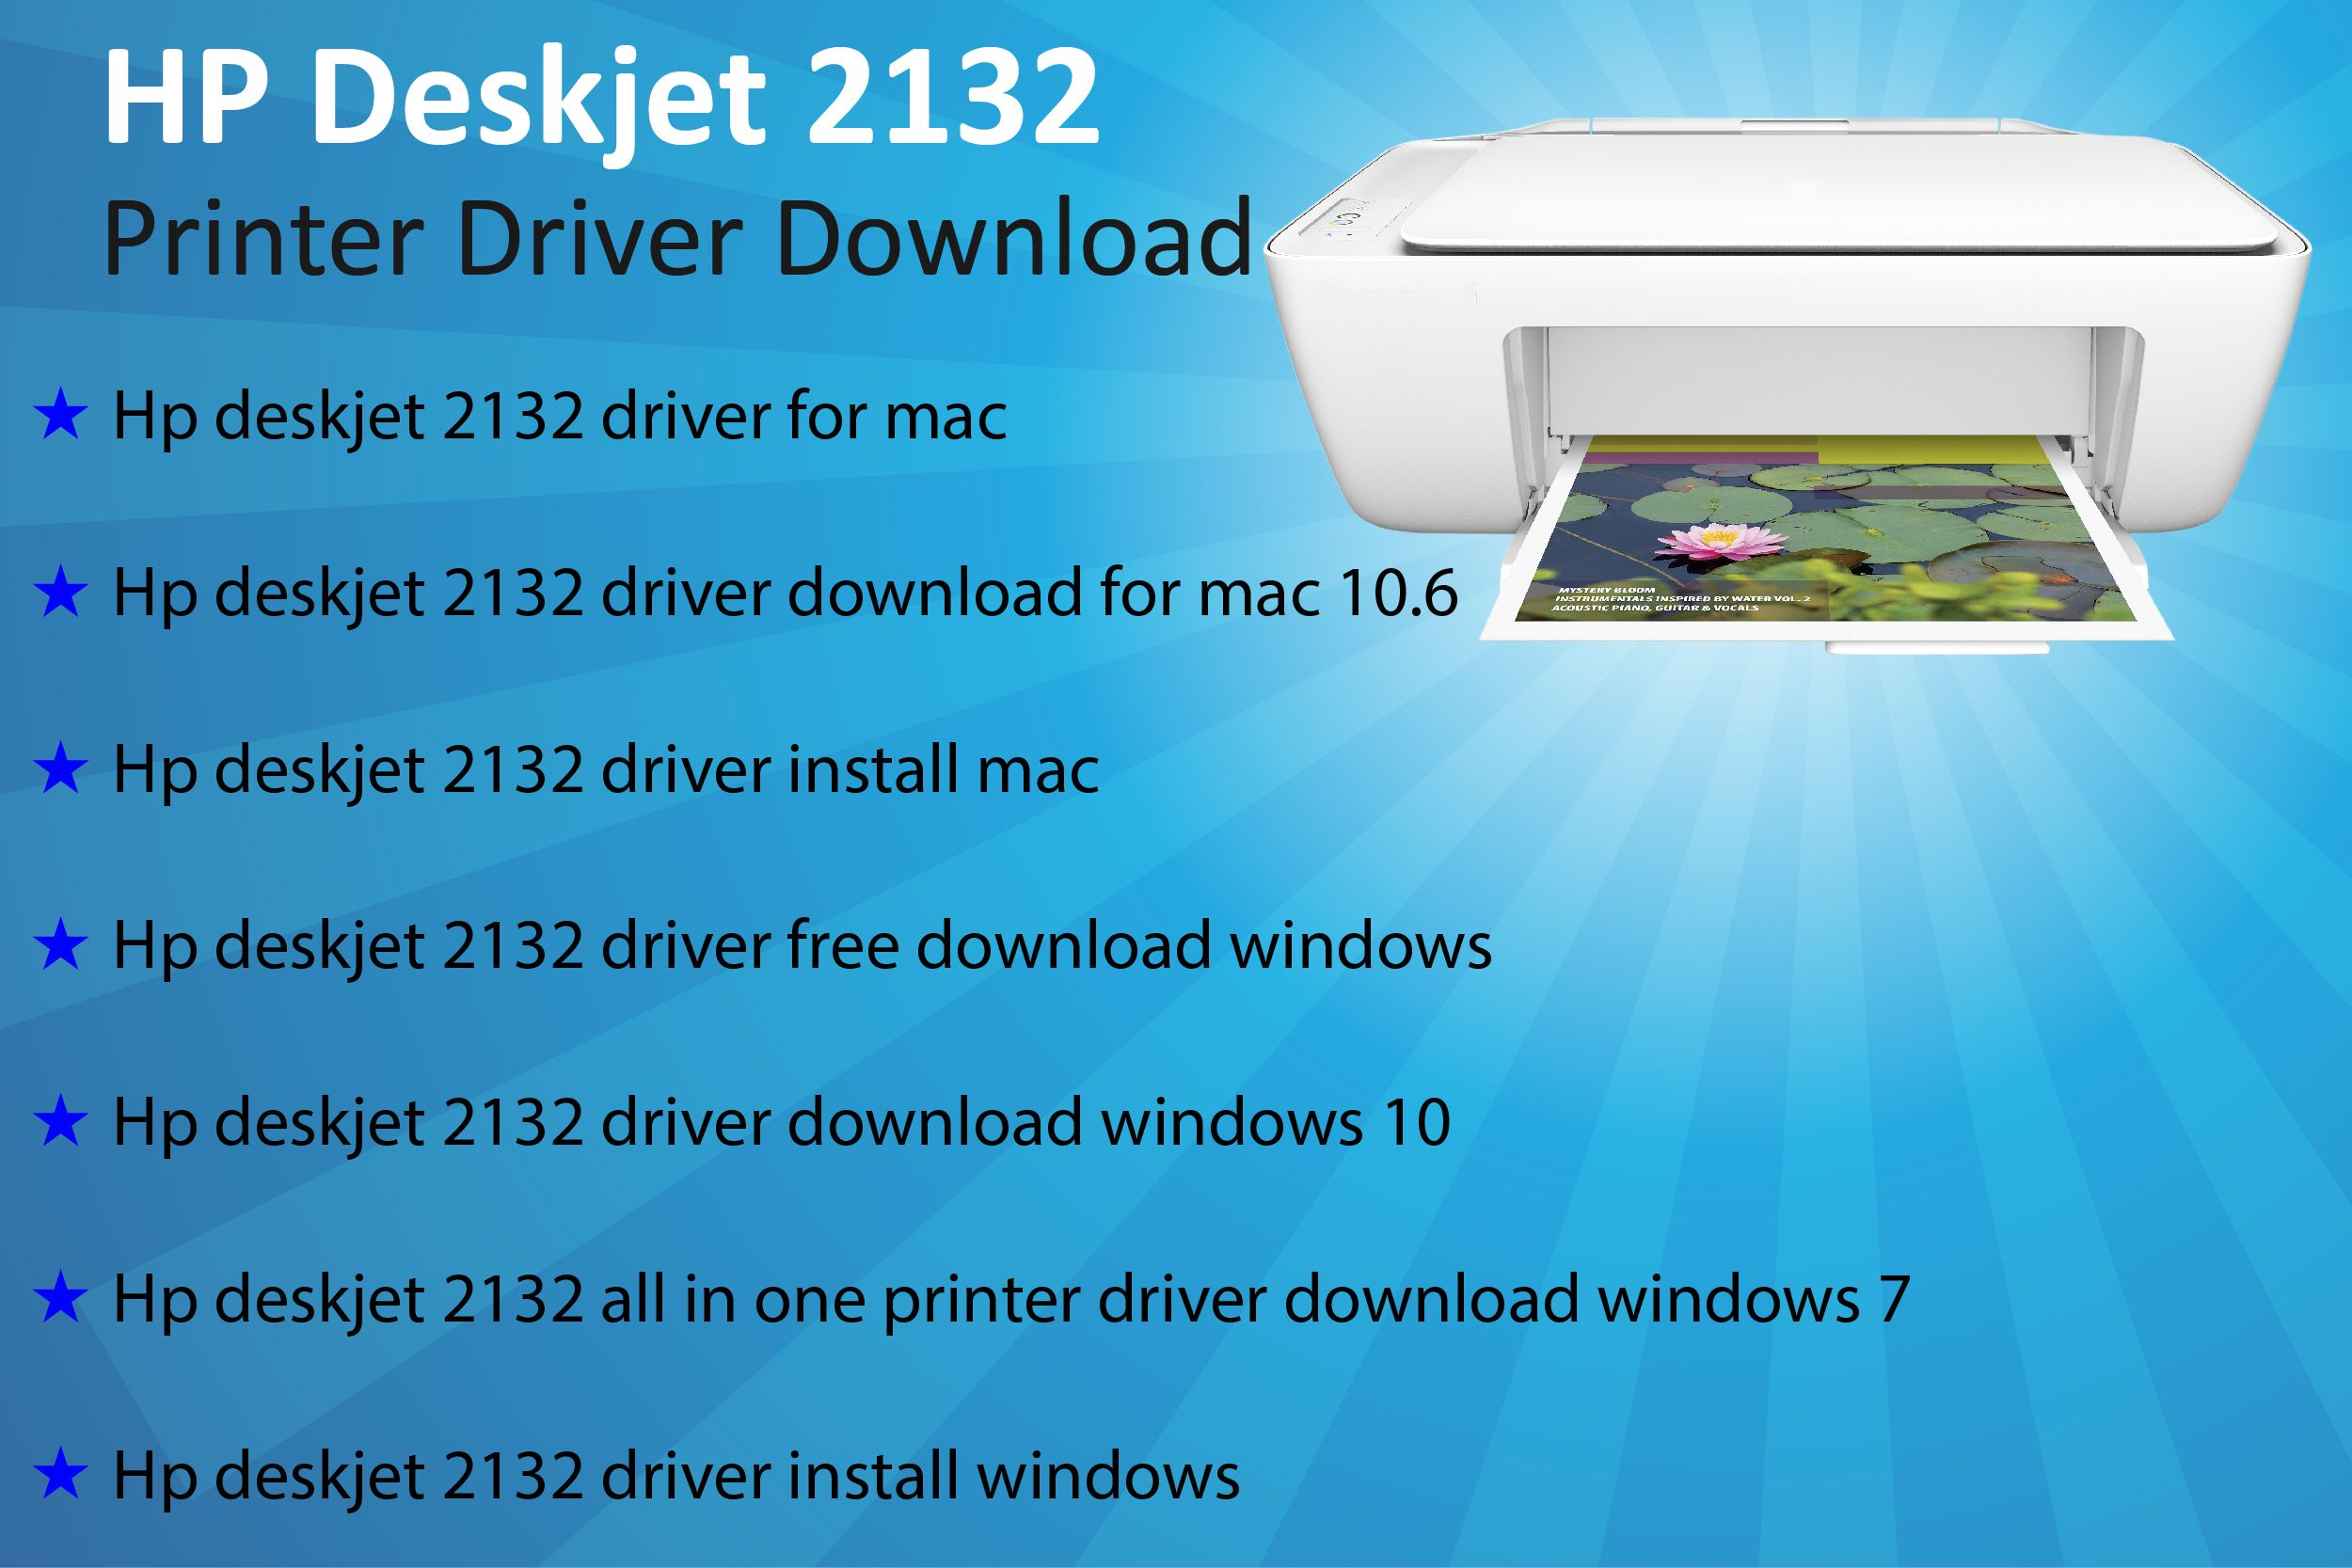 To download the hp deskjet 2132 printer driver for windows